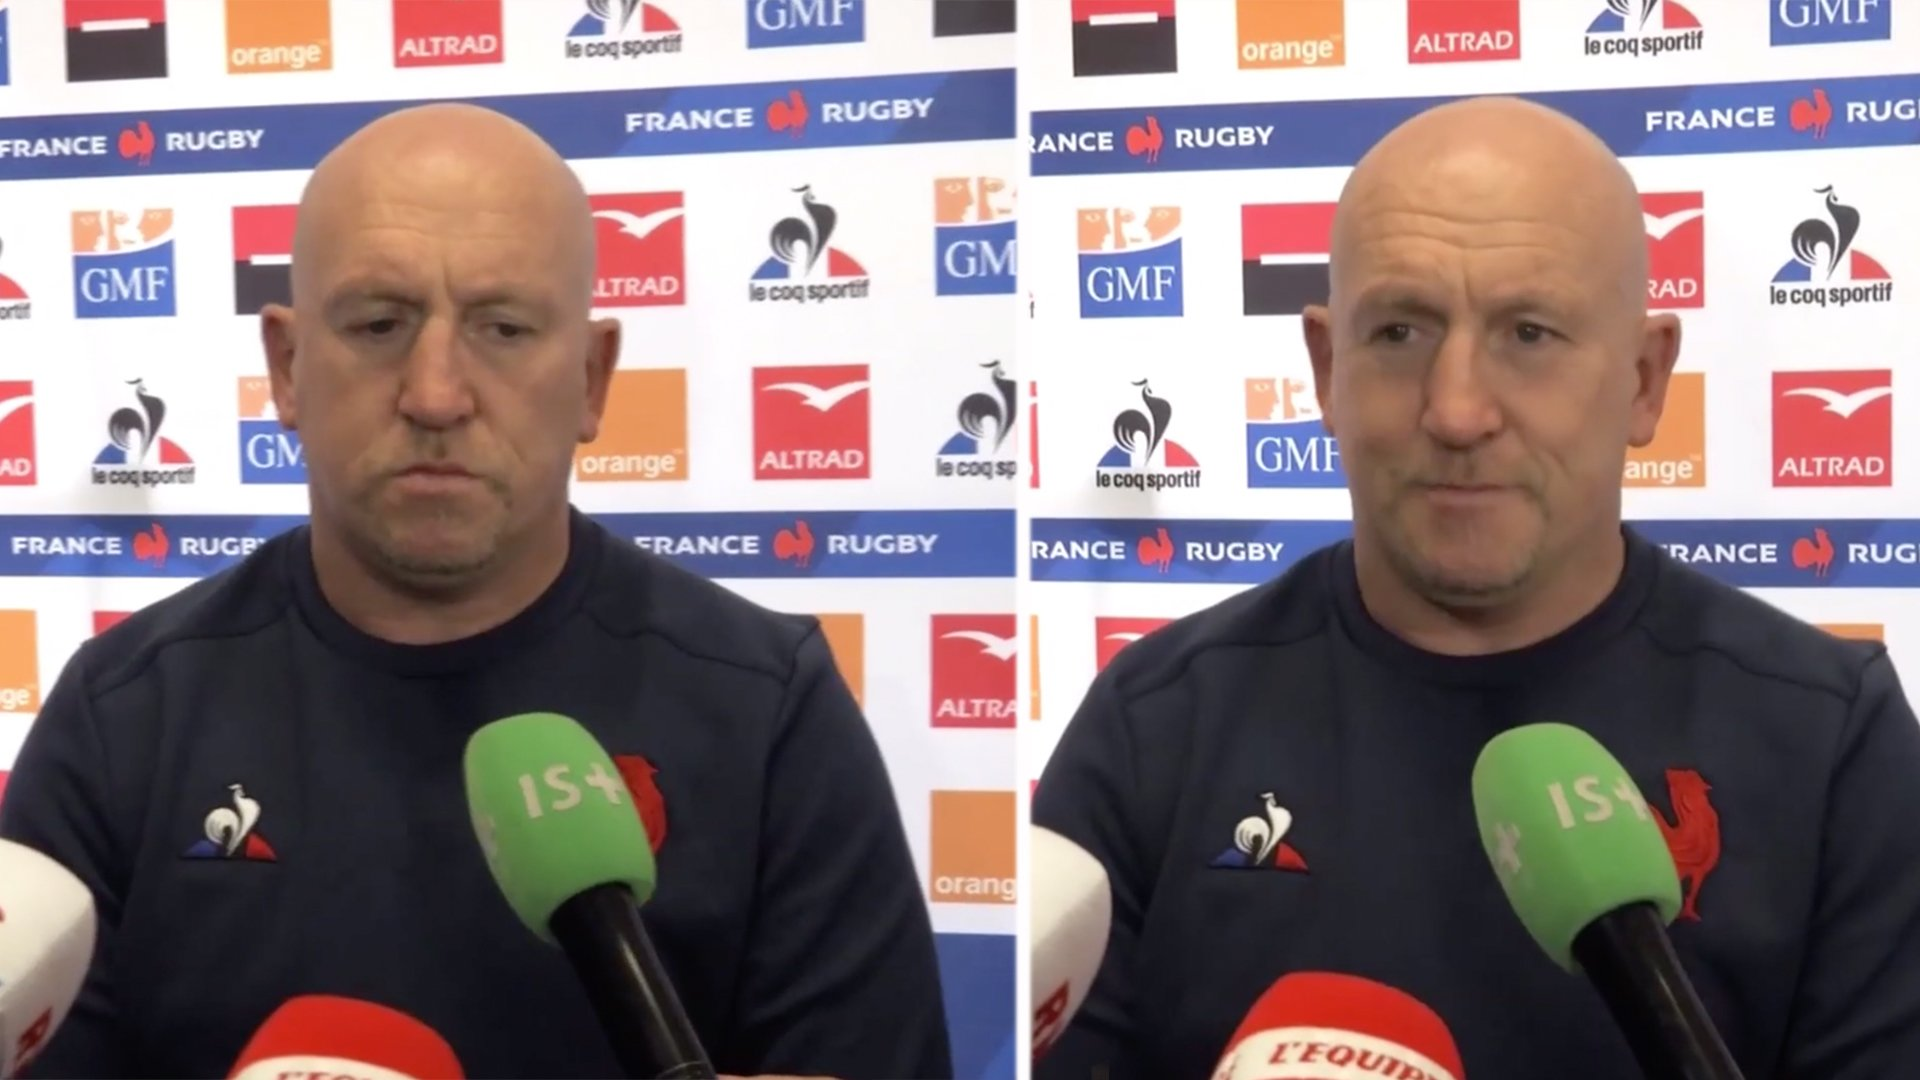 Shaun Edwards first french interview is nothing short of comedy gold